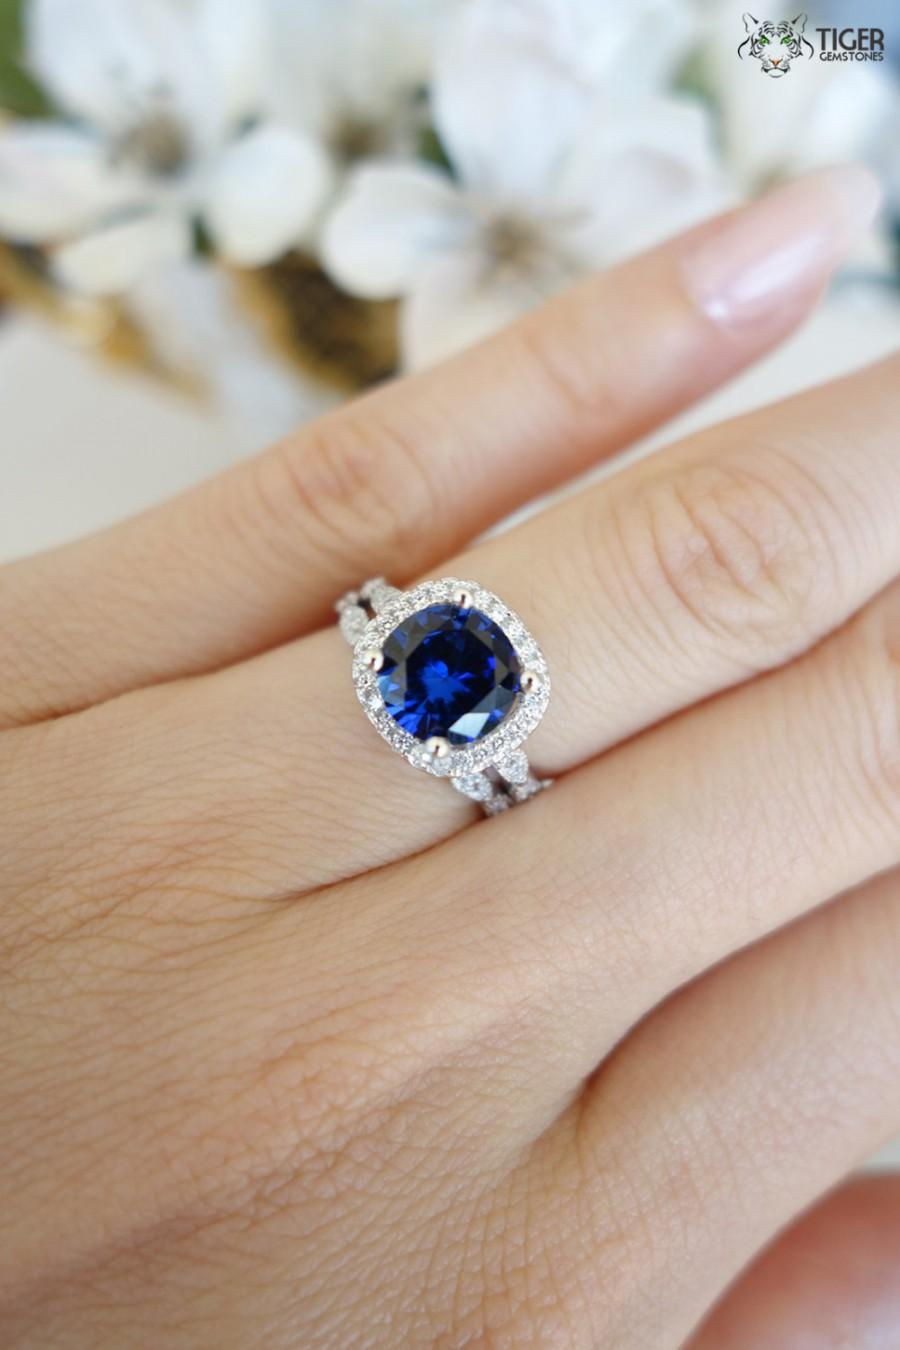 Sapphire Engagement Ring And Wedding Band Set 225 Carat Halo Wedding Set Vintage Bridal Rings Man